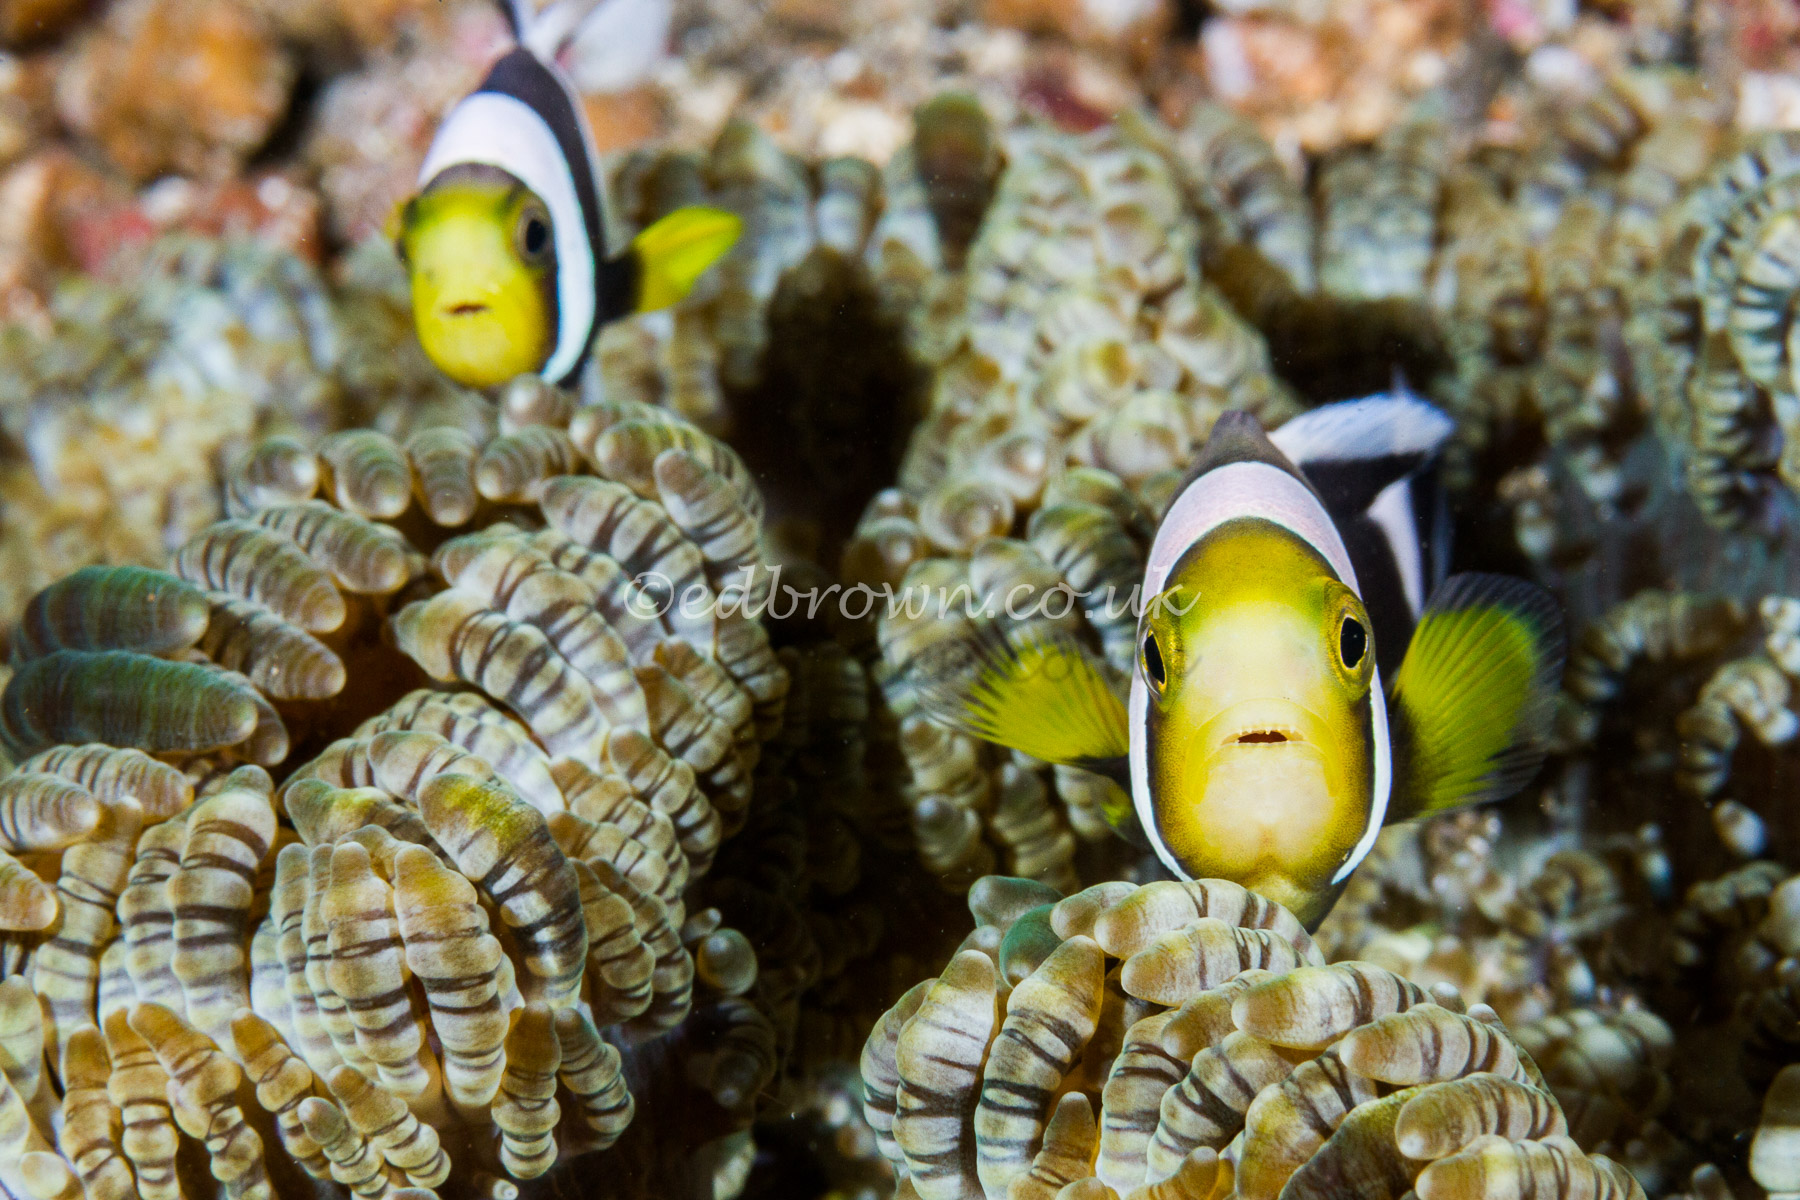 Saddleback clownfish (Amphiprion polymnus)